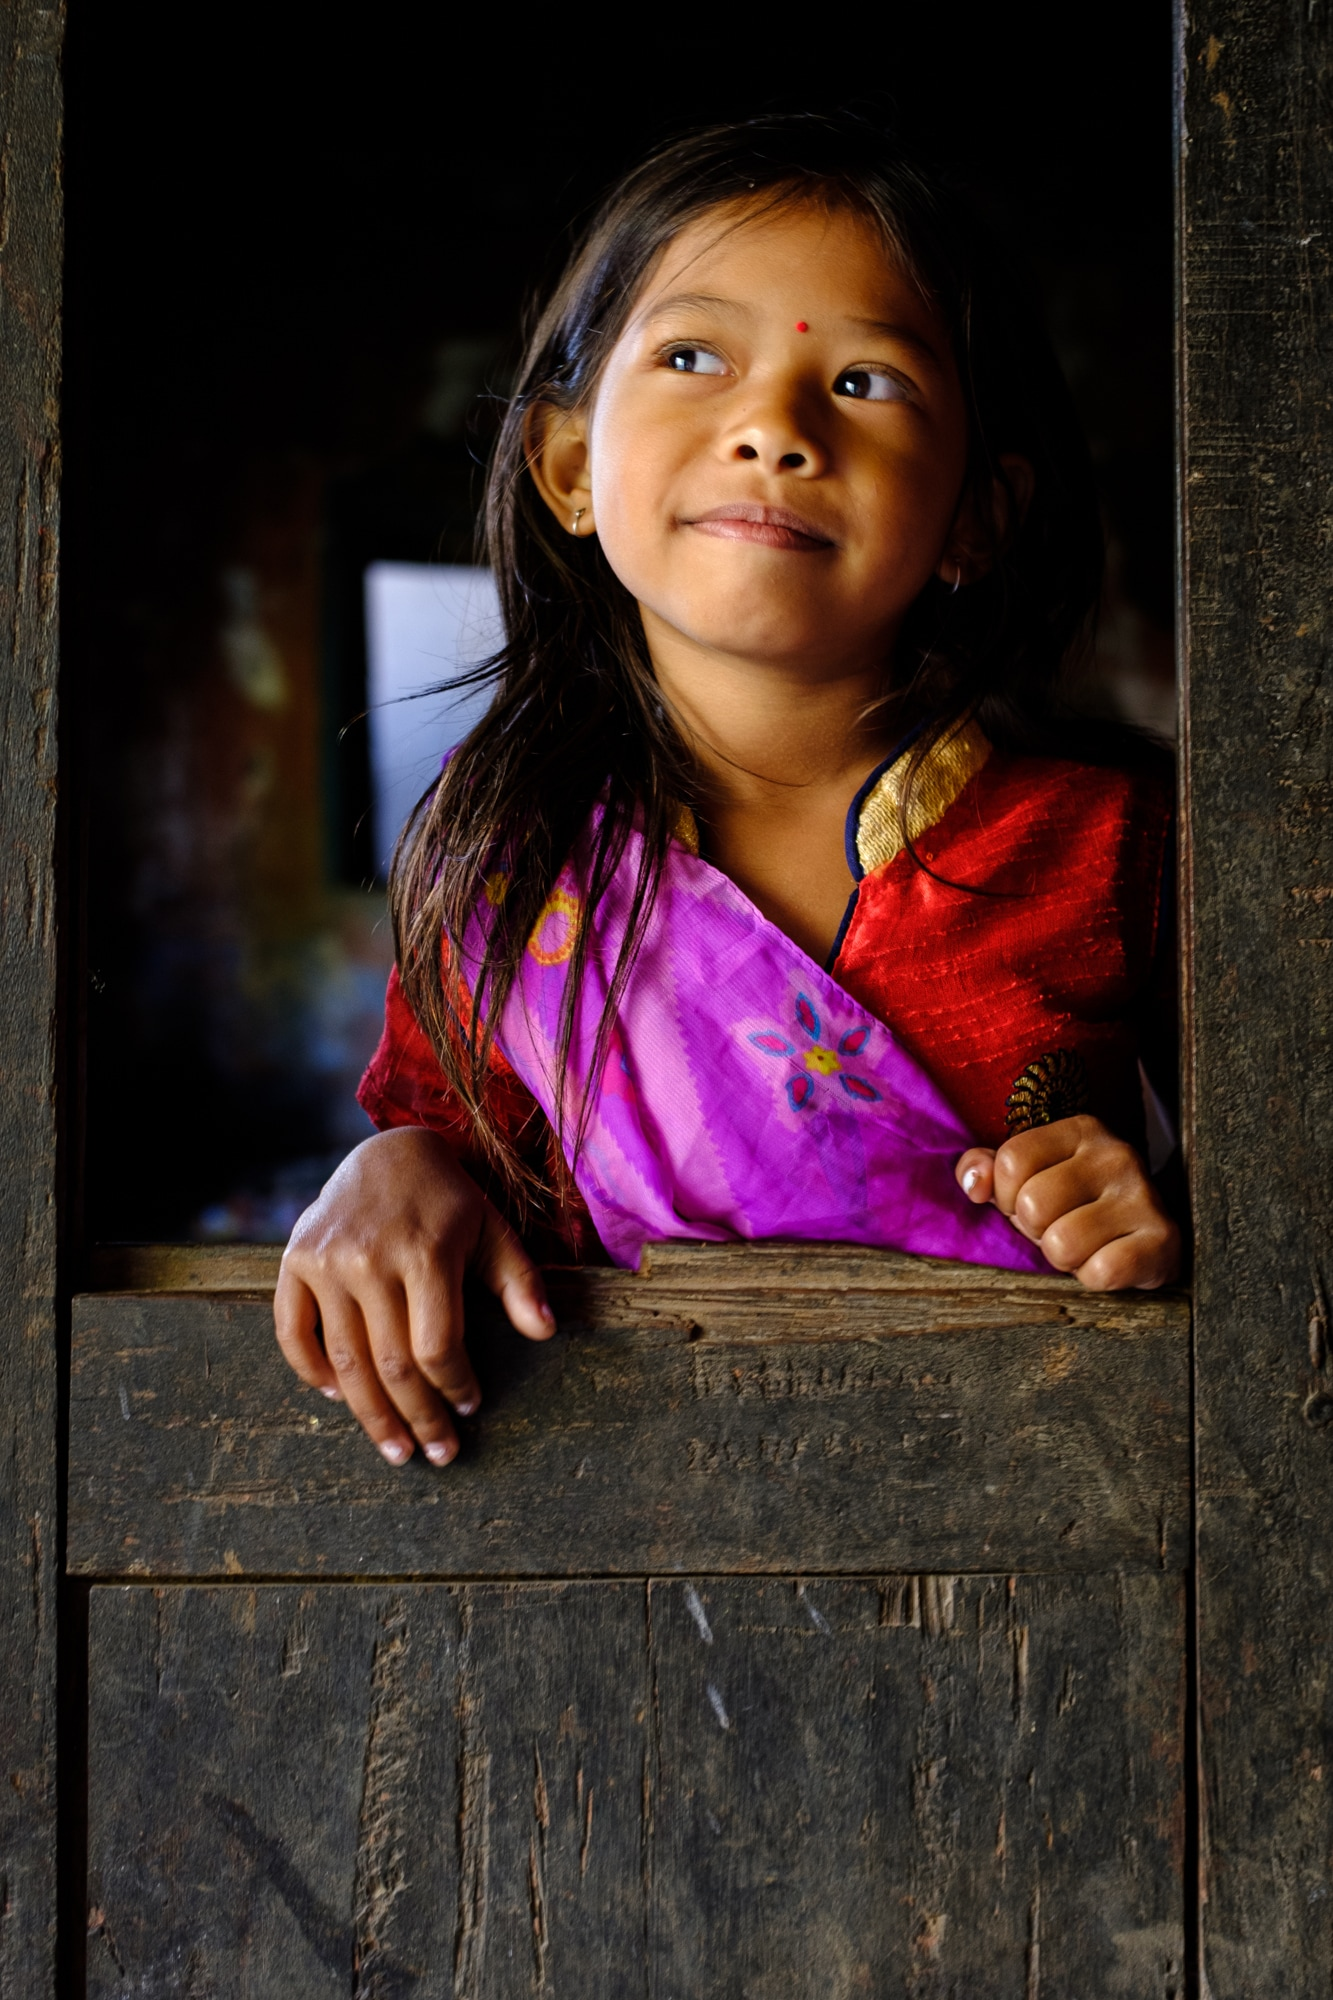 A young girl poses for a picture in Pokhara, Nepal